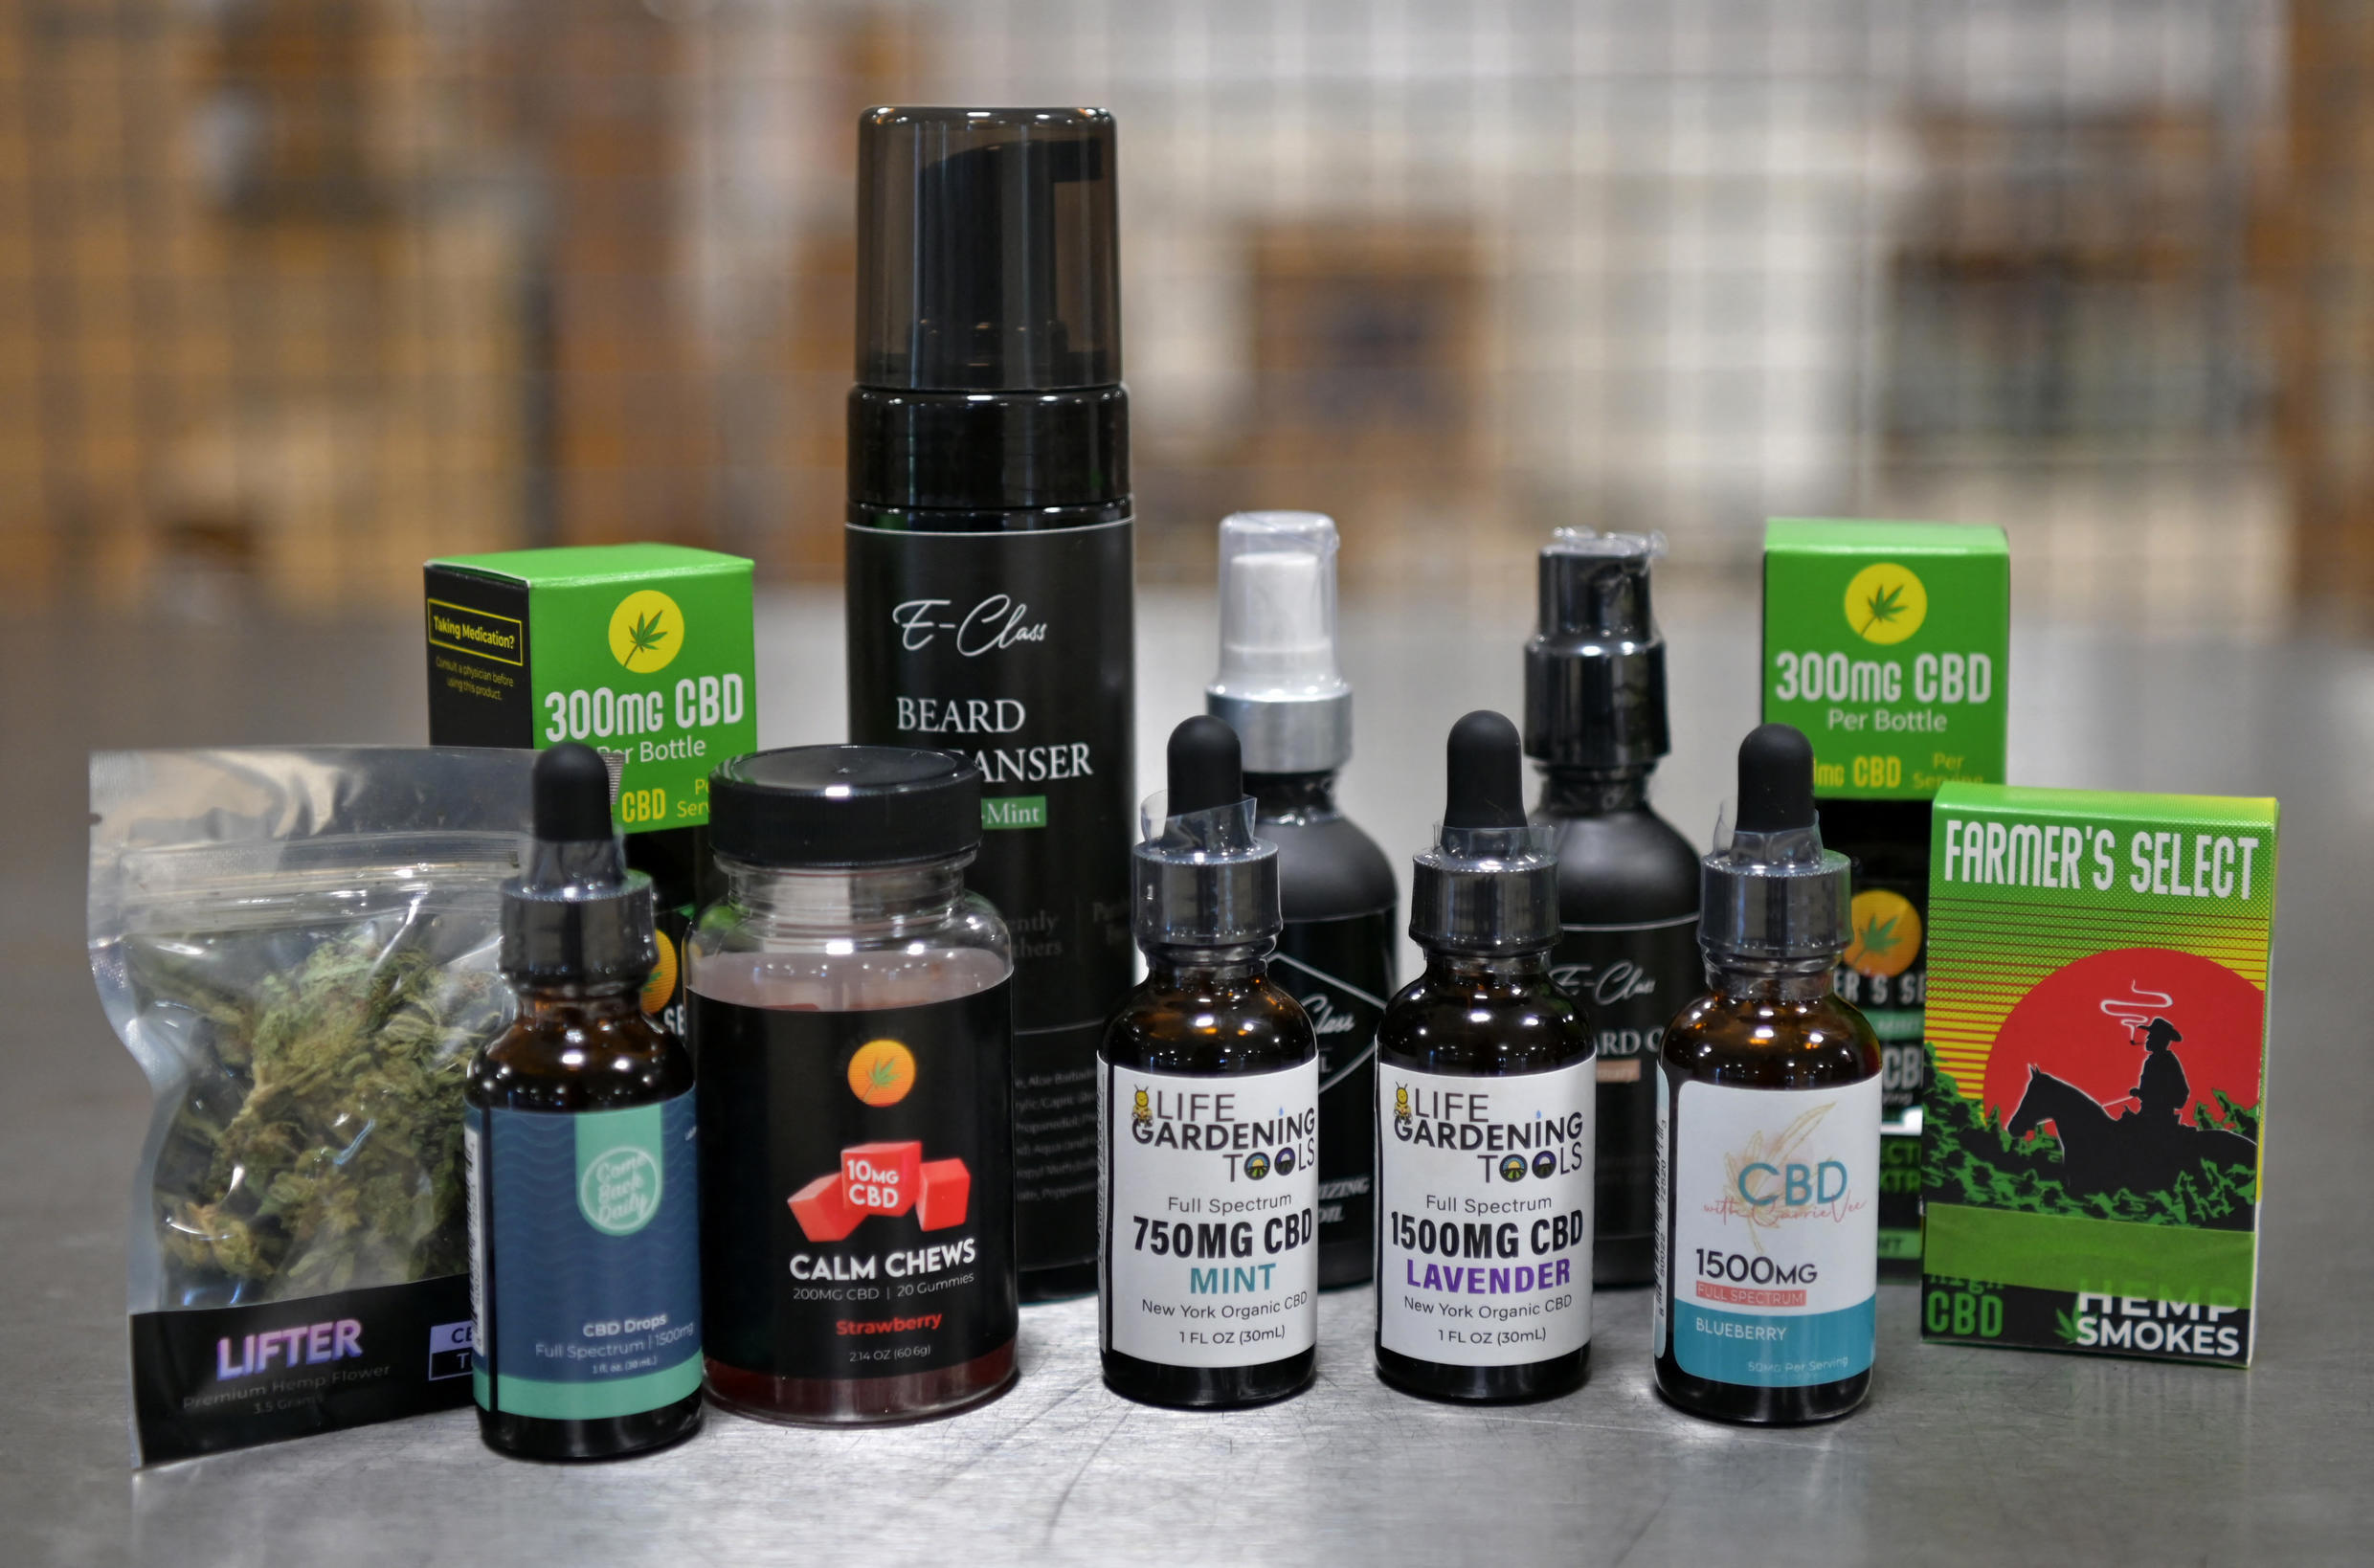 Diverse CBD products are displayed at a hemp plant, on April 13, 2021 in Binghamton, New York.